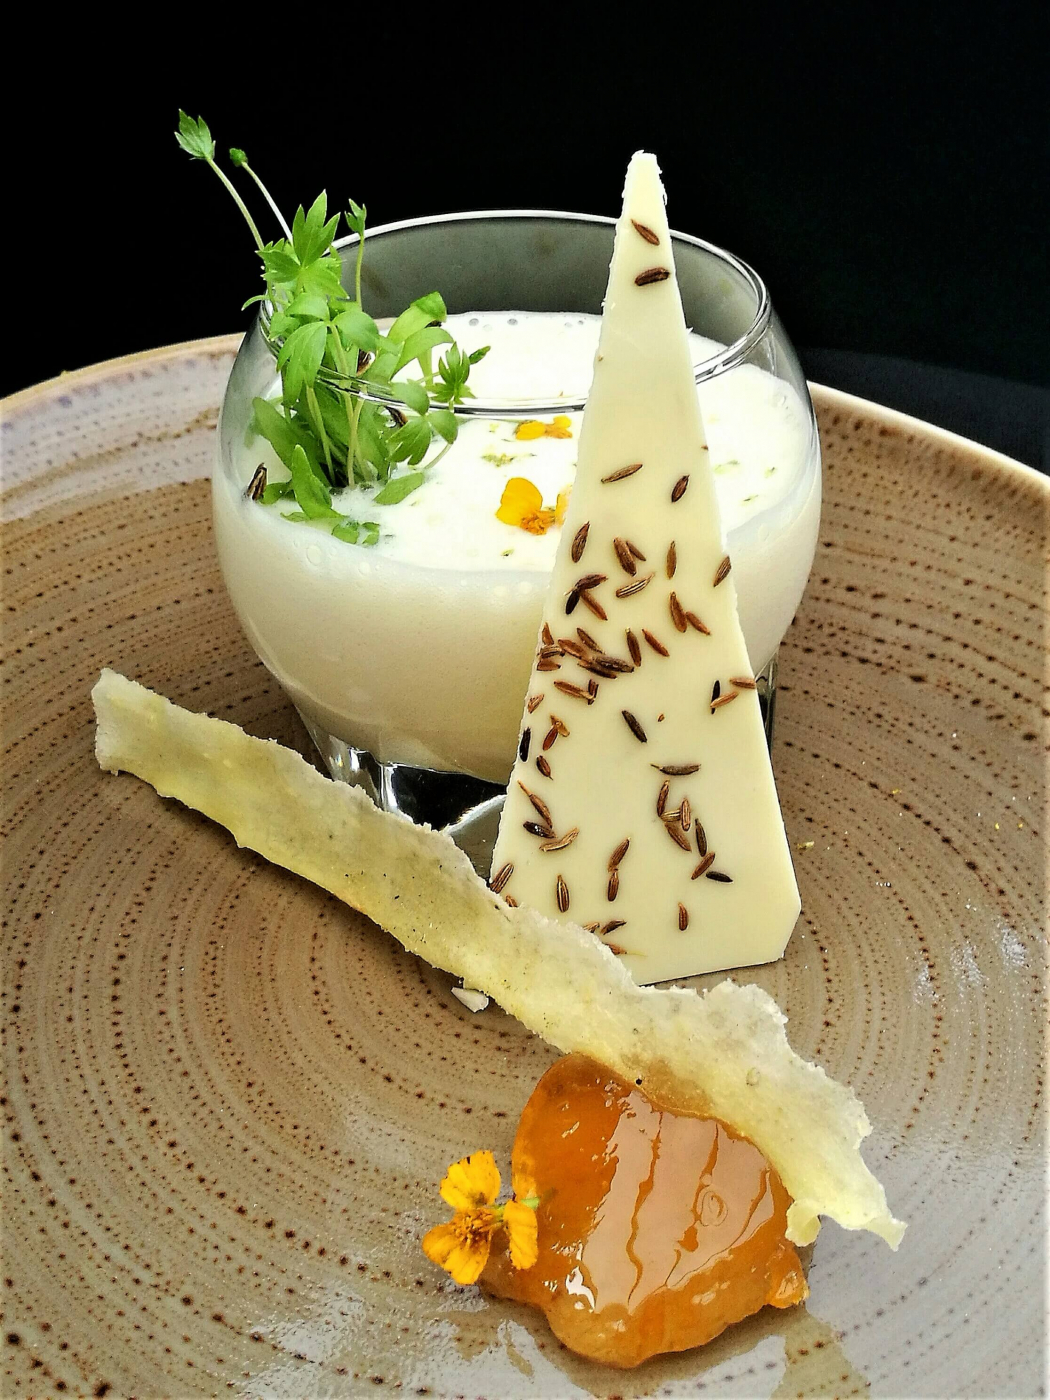 White chocolate mousse recipe, parsnip crisp, white chocolate and cumin shard, and apricot jam - 1